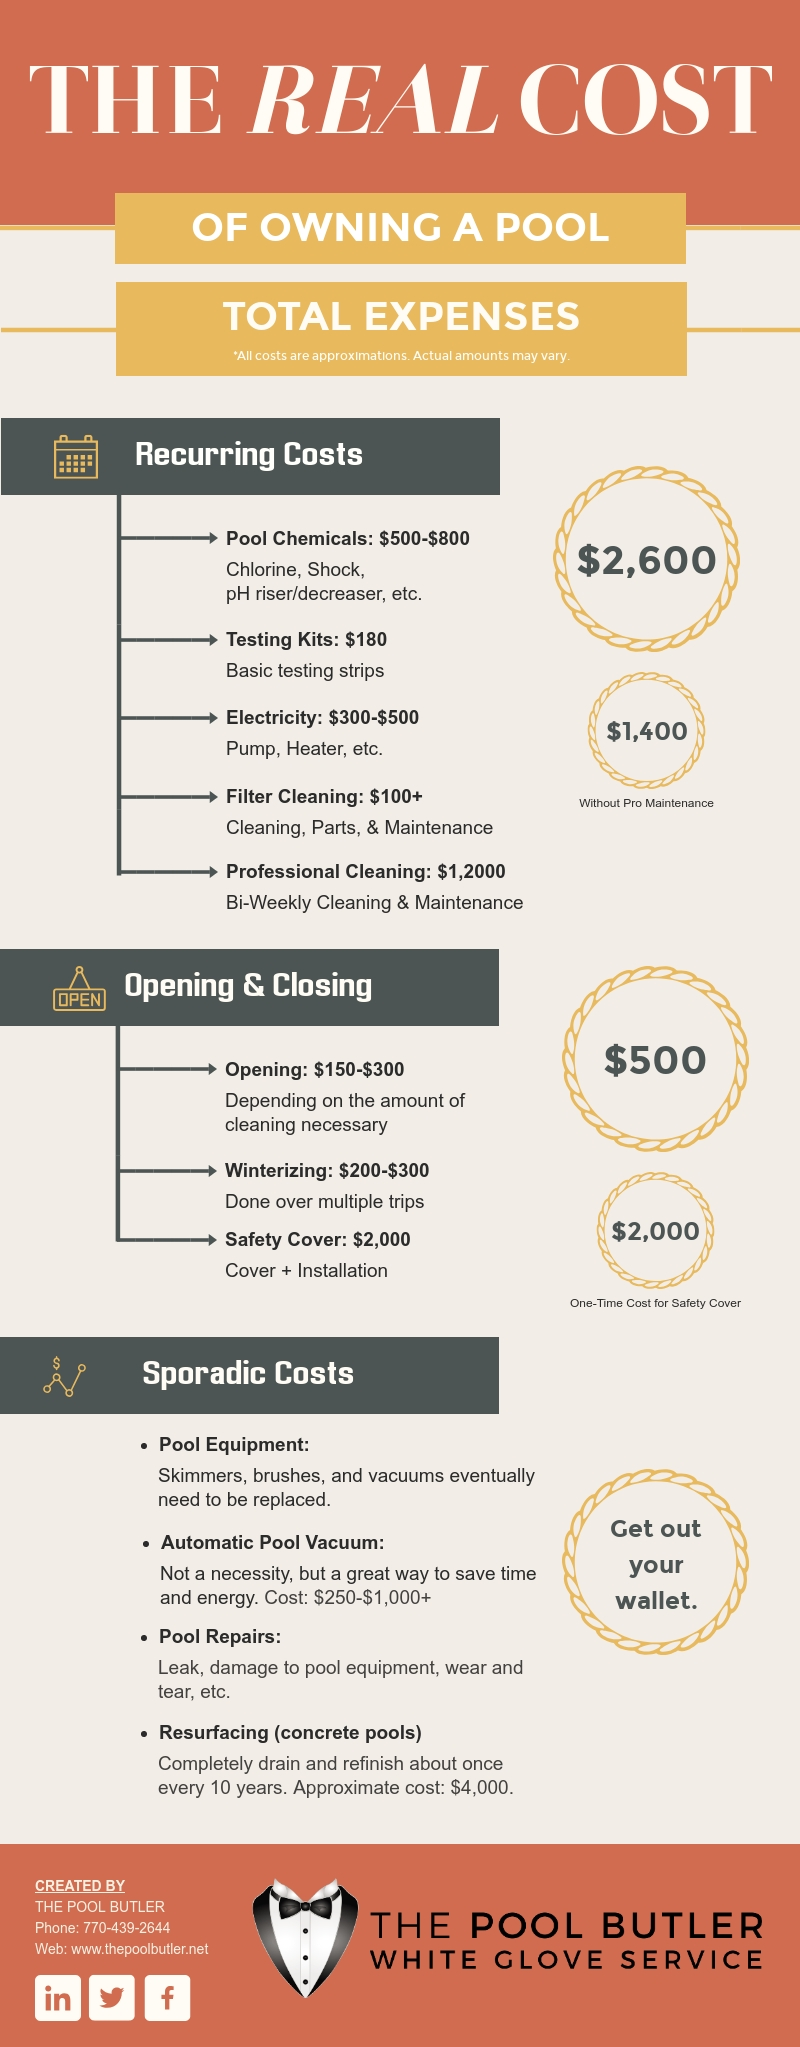 The Real Cost of Owning A Pool [infographic]